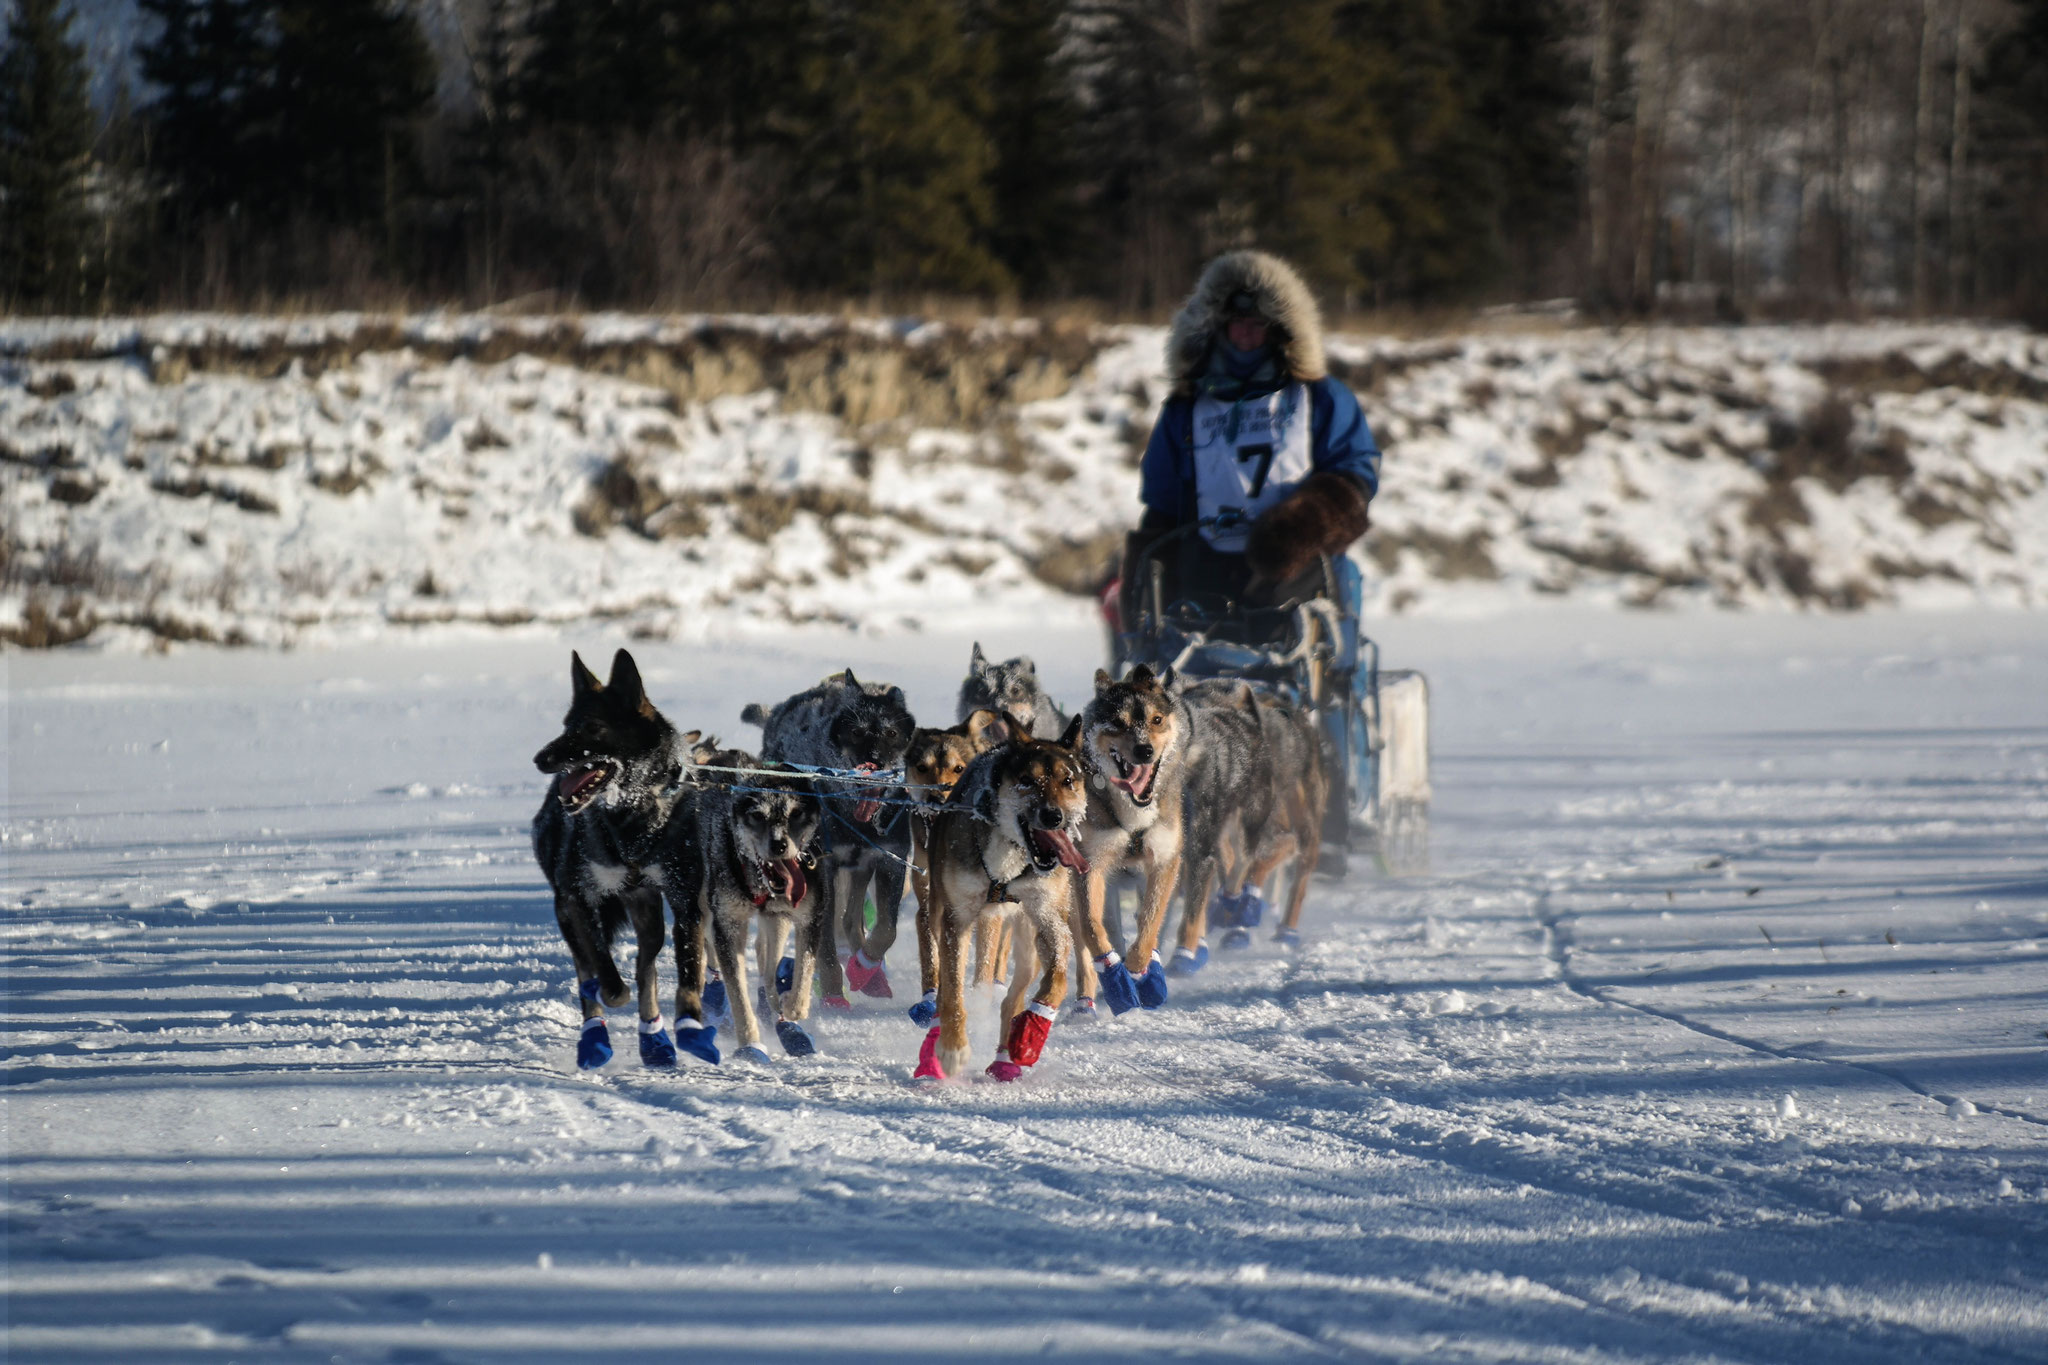 Another shot of a sled dog team passing by!